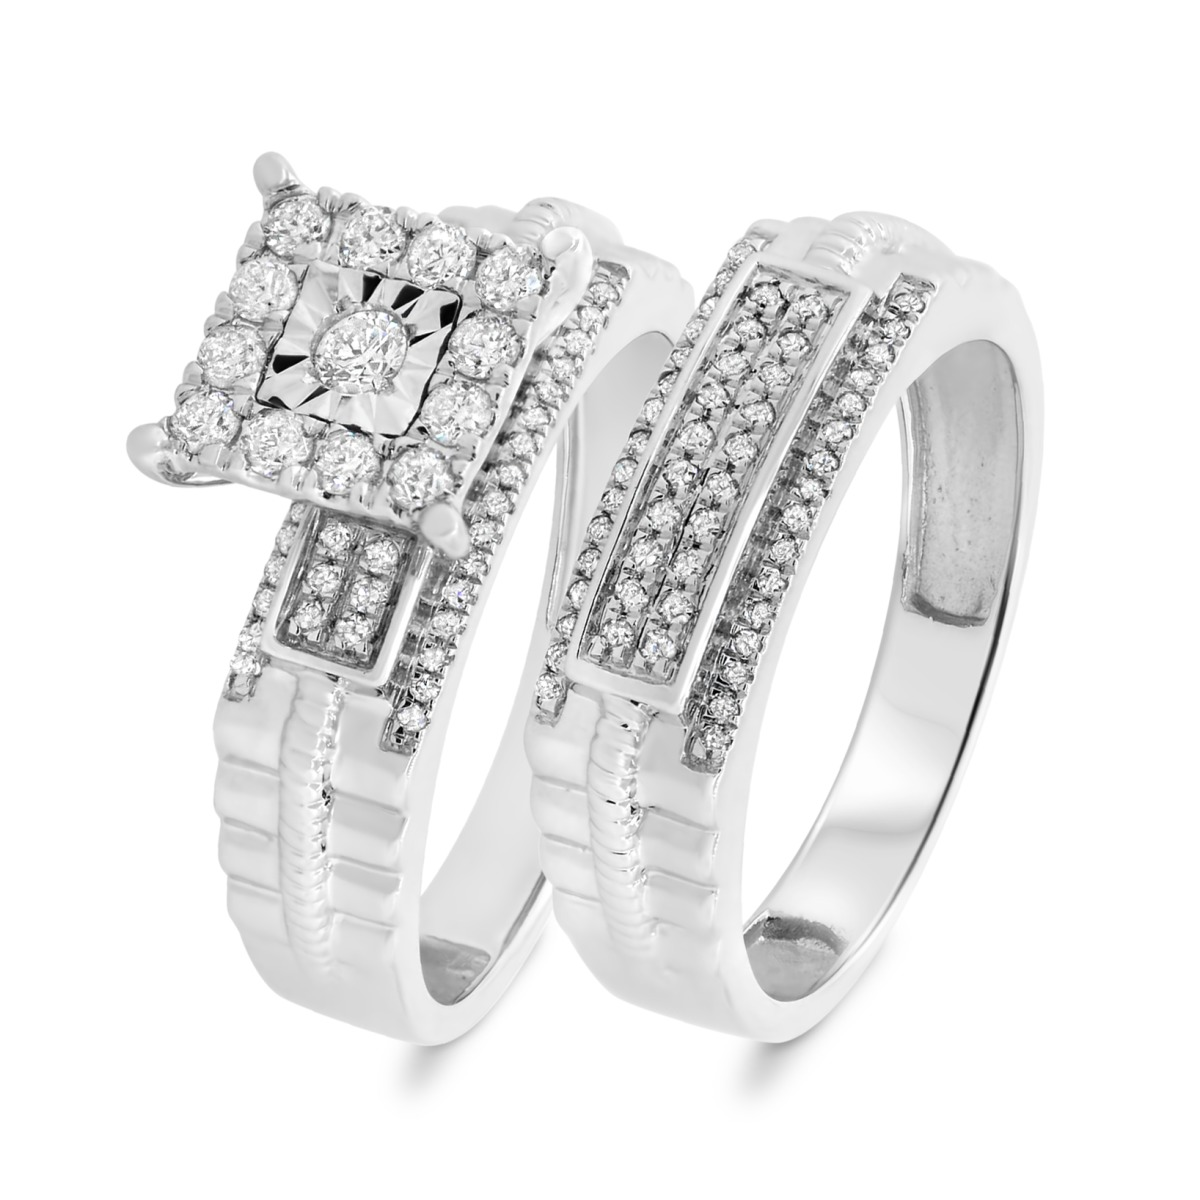 1/2 CT. T.W. Diamond Matching Bridal Ring Set 14K White Gold